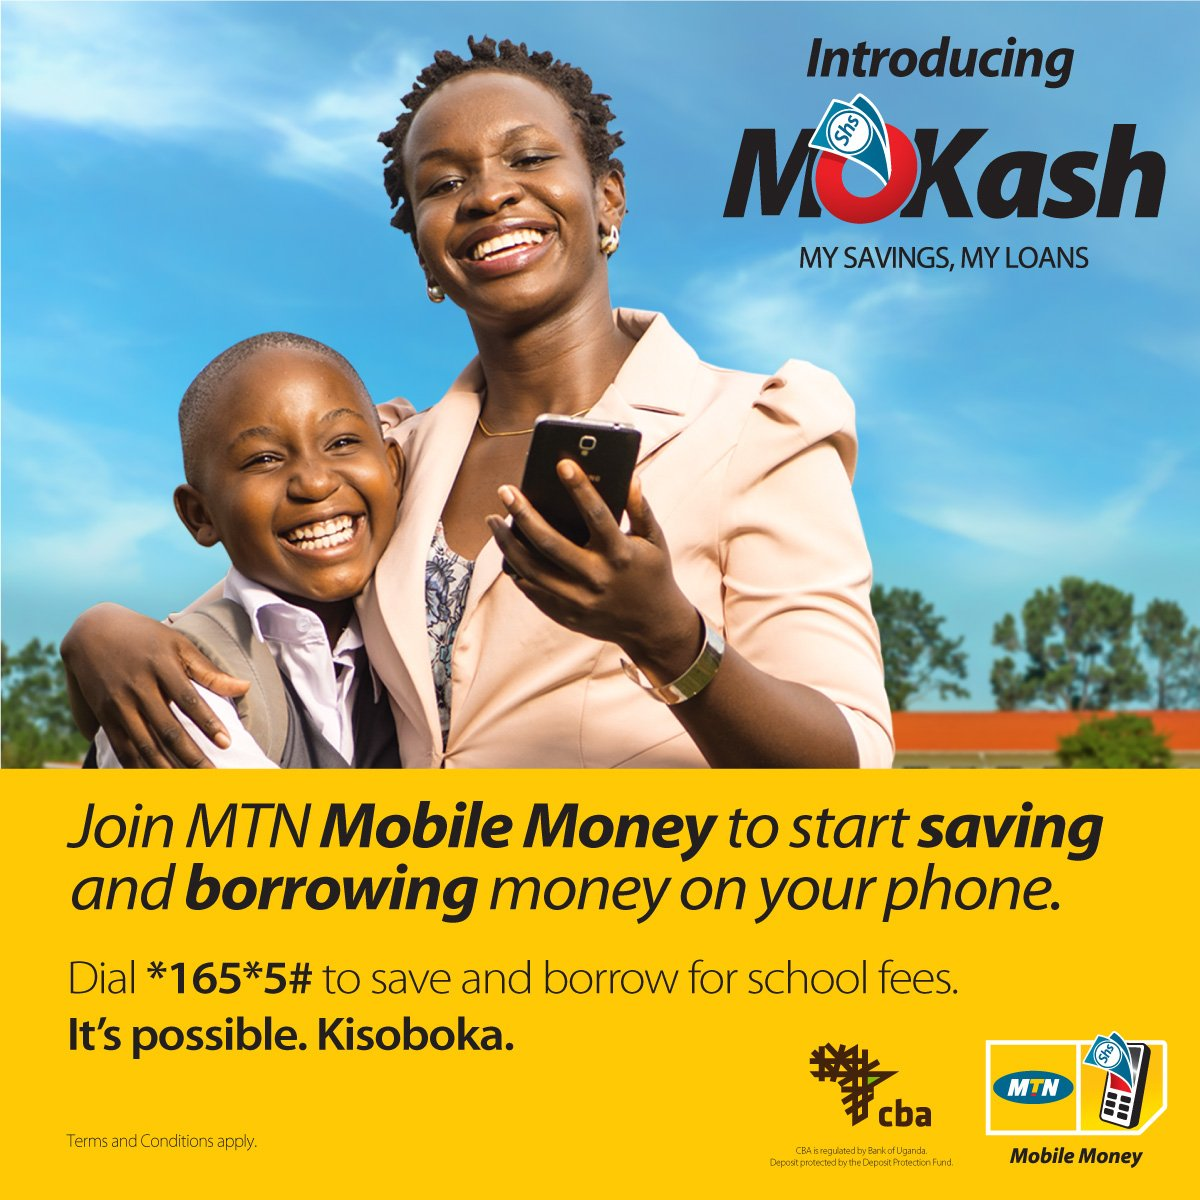 BREAKING: @mtnug has today launched #MoKash - a micro loans and savings product. https://t.co/WWVjUq3HEa #MTNMoKash https://t.co/0rGl3edbtf